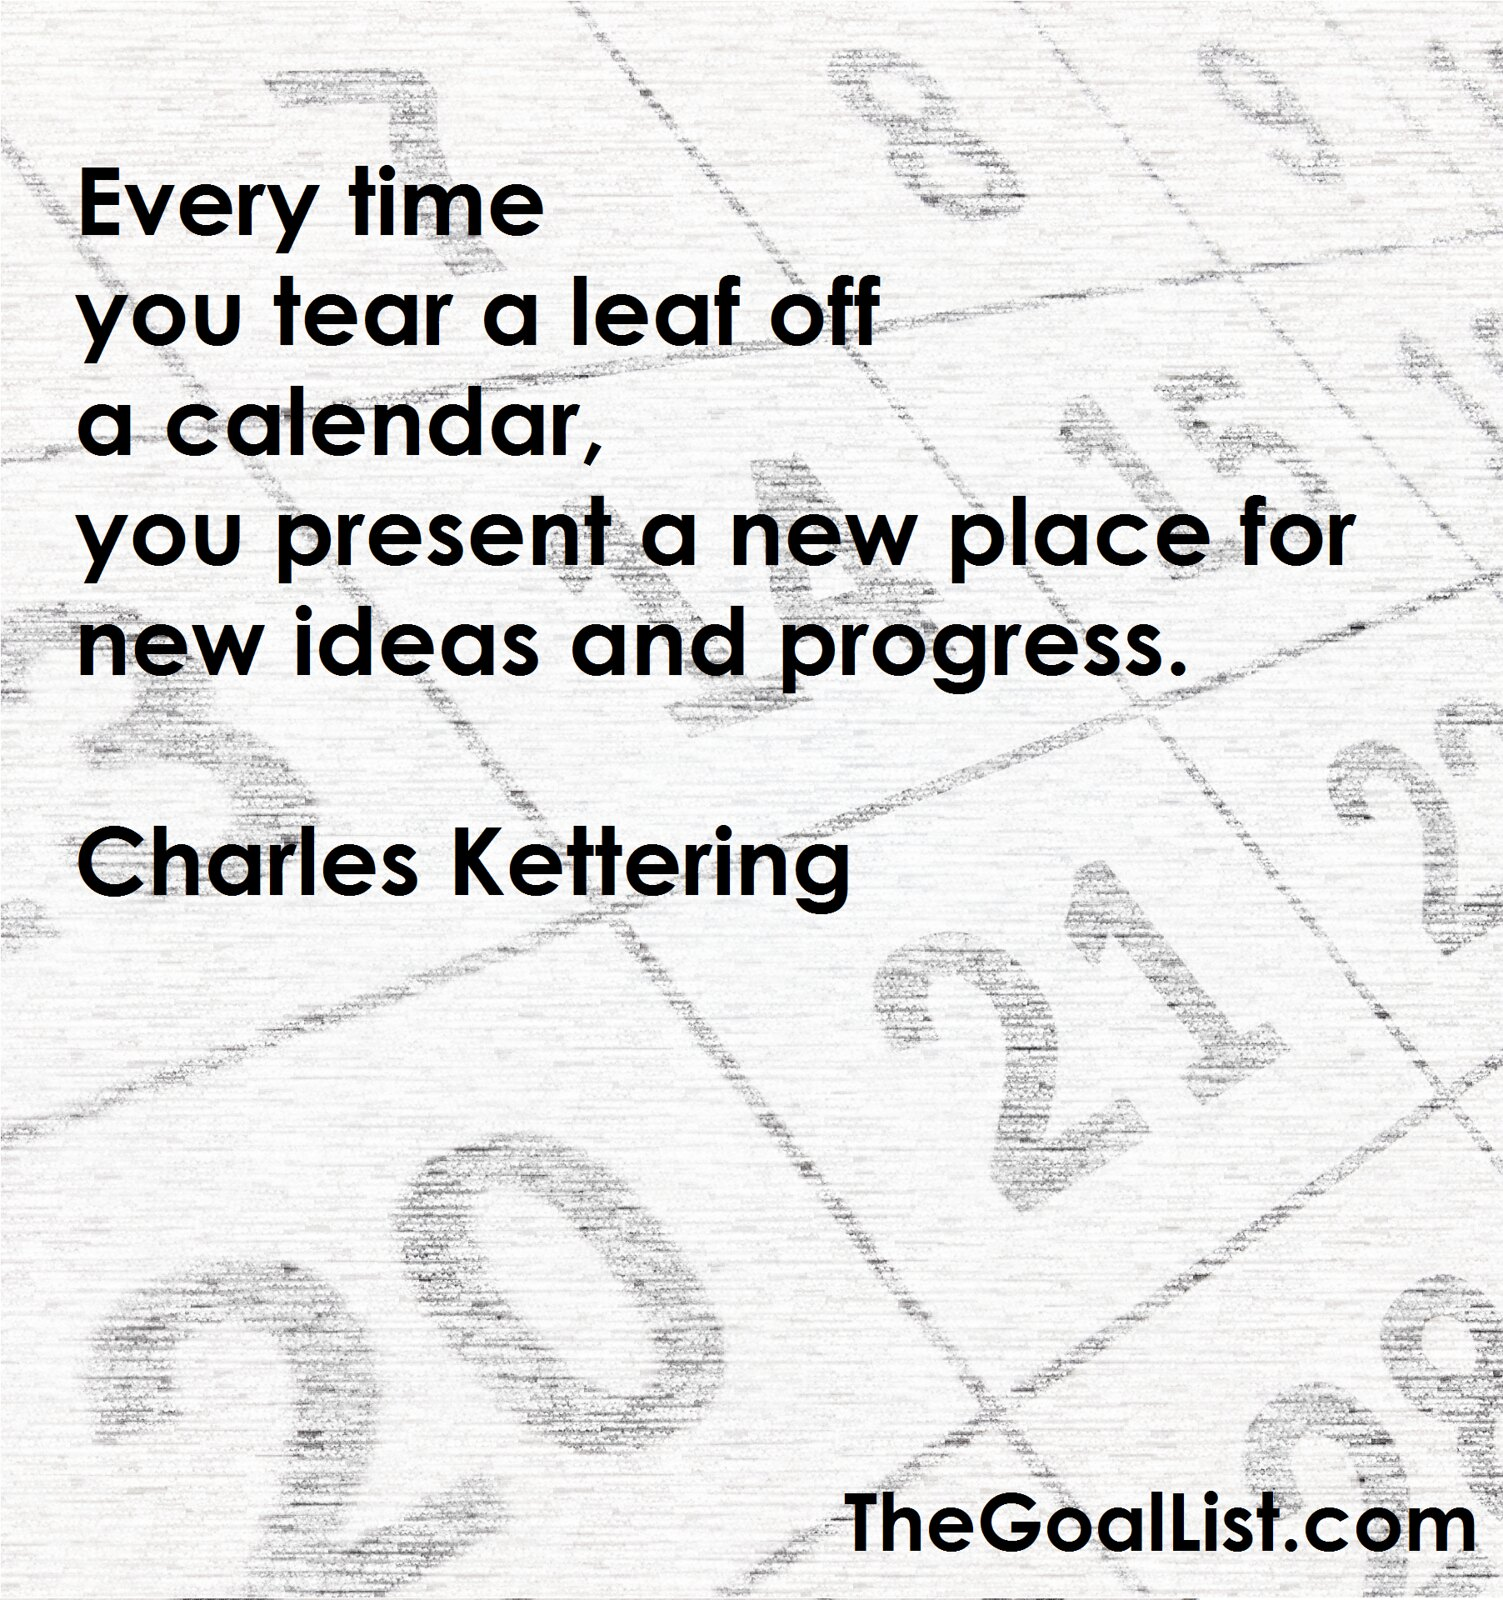 Charles Kettering quote - Read more at TheGoalList.com